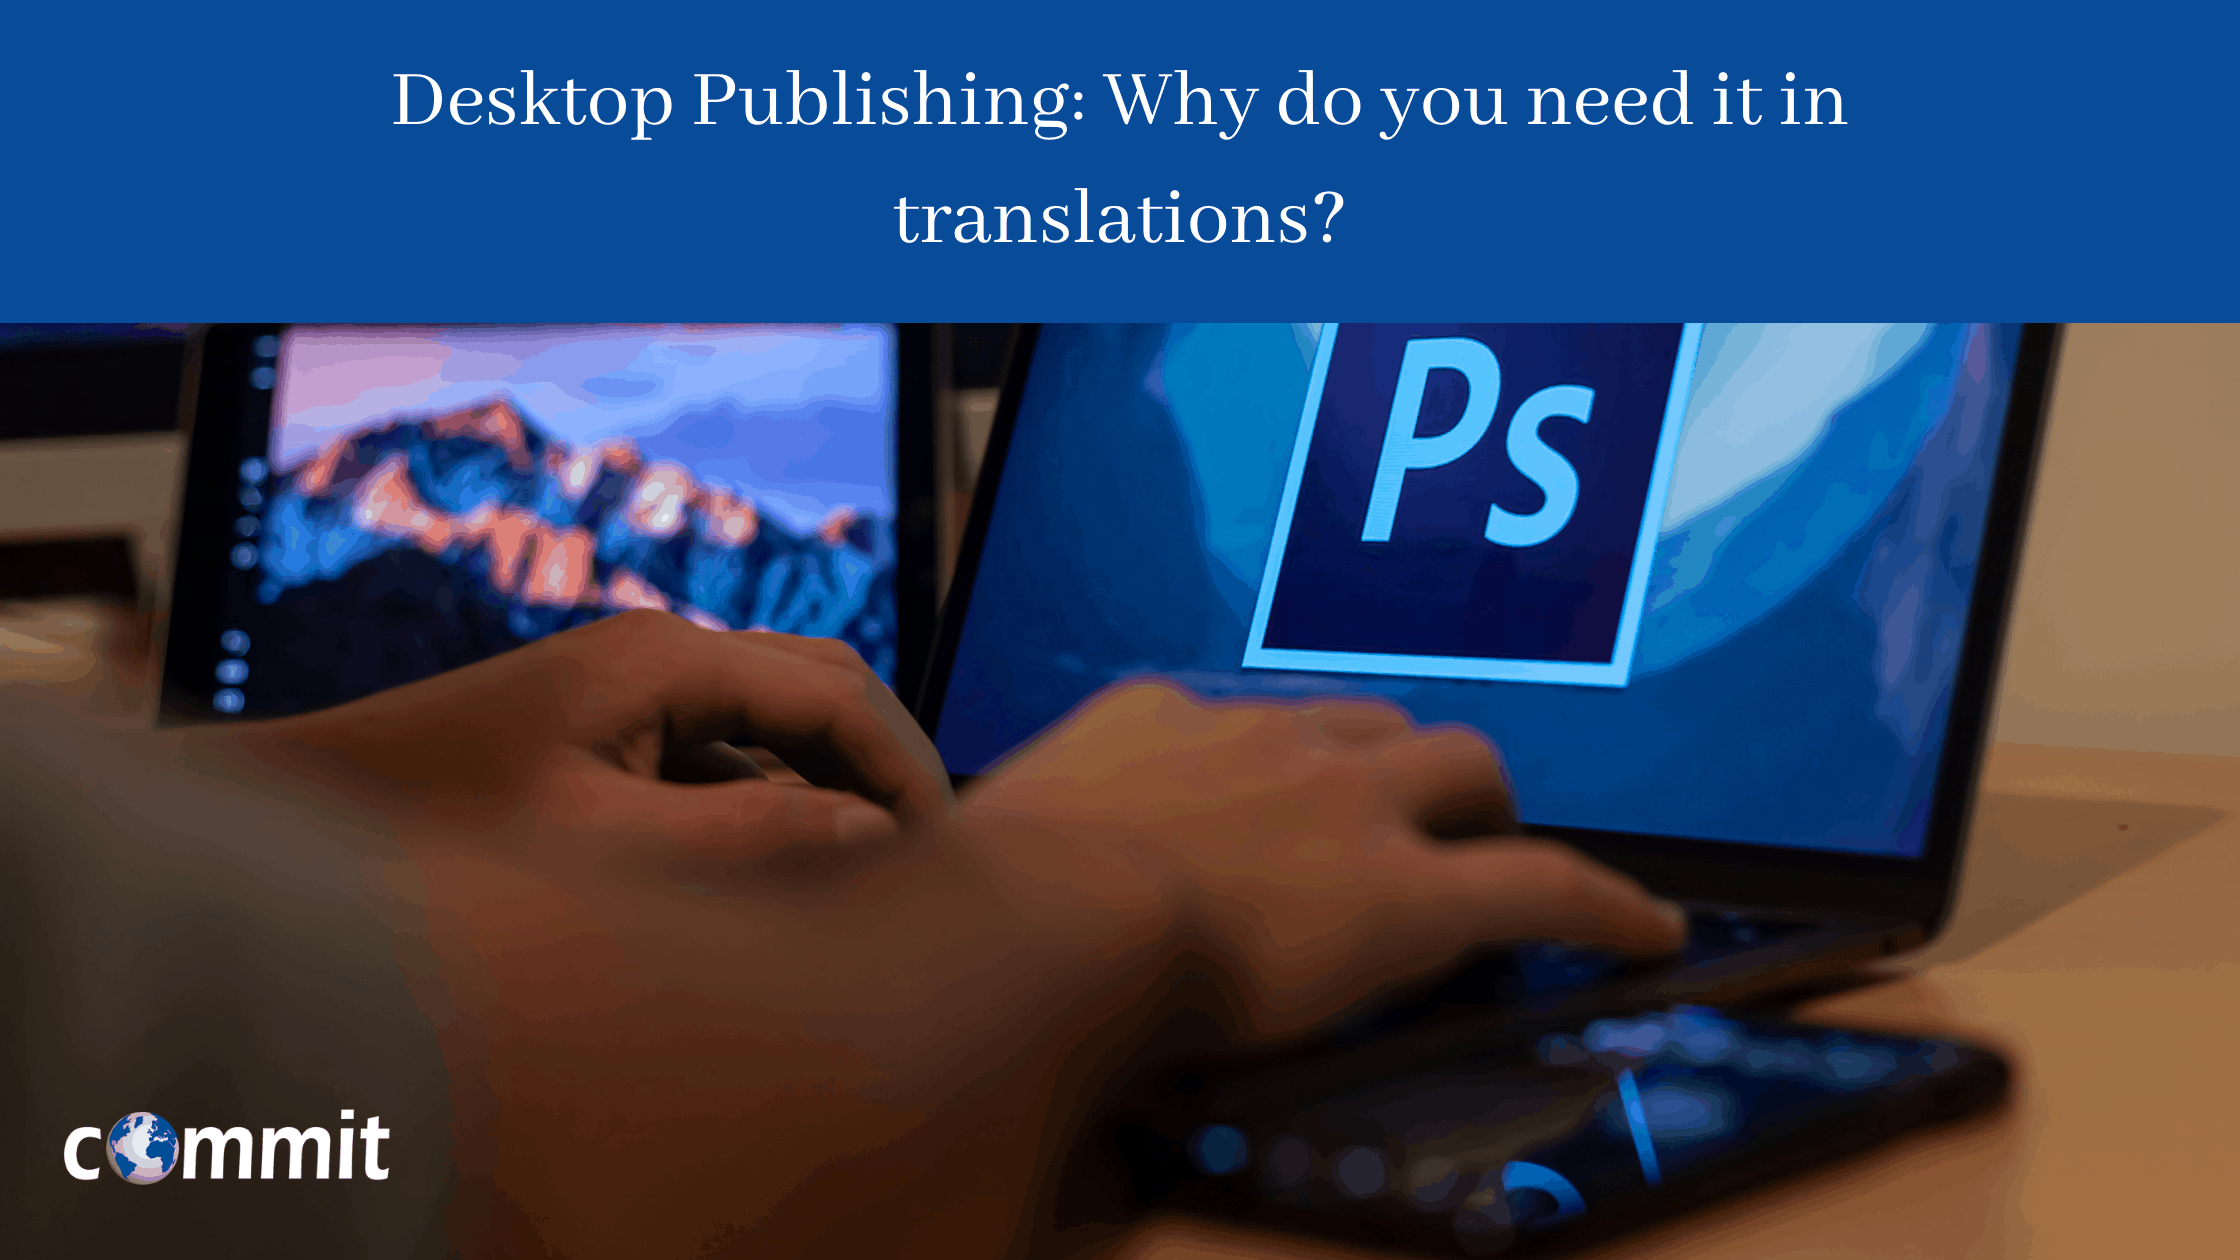 Desktop Publishing: Why do you need it in translations?